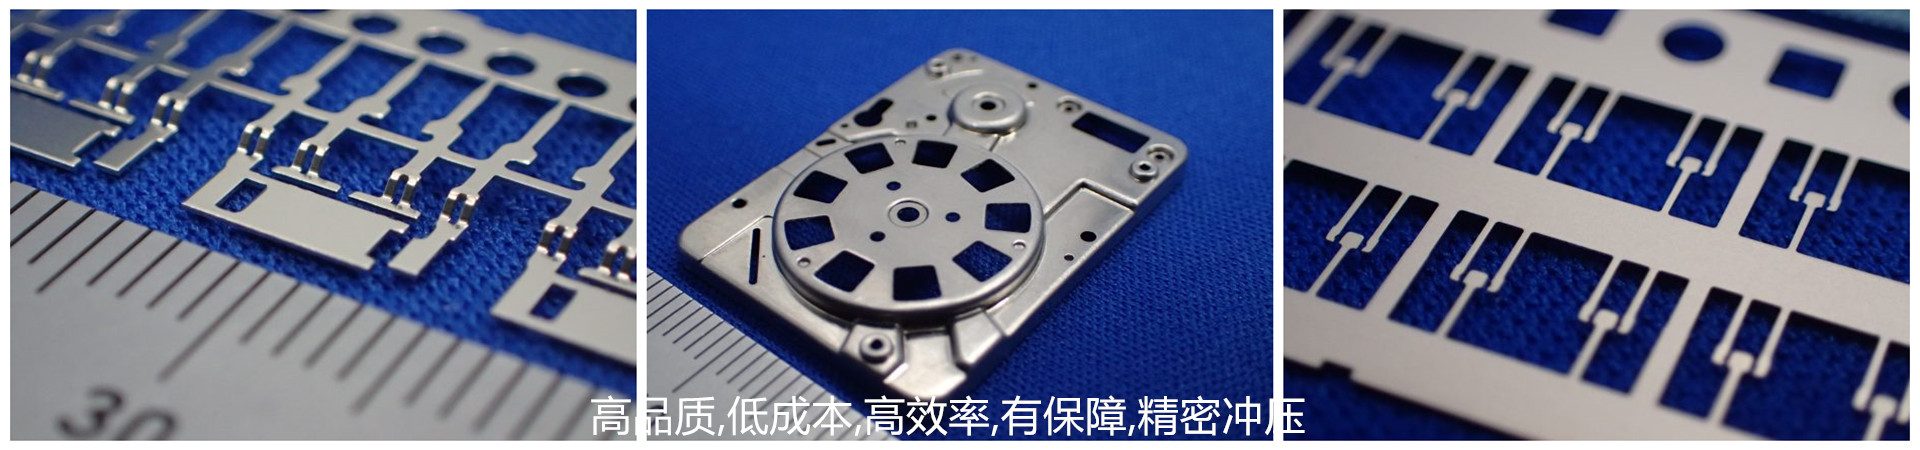 High quality, low cost, high efficiency, guaranteed, precision stamping